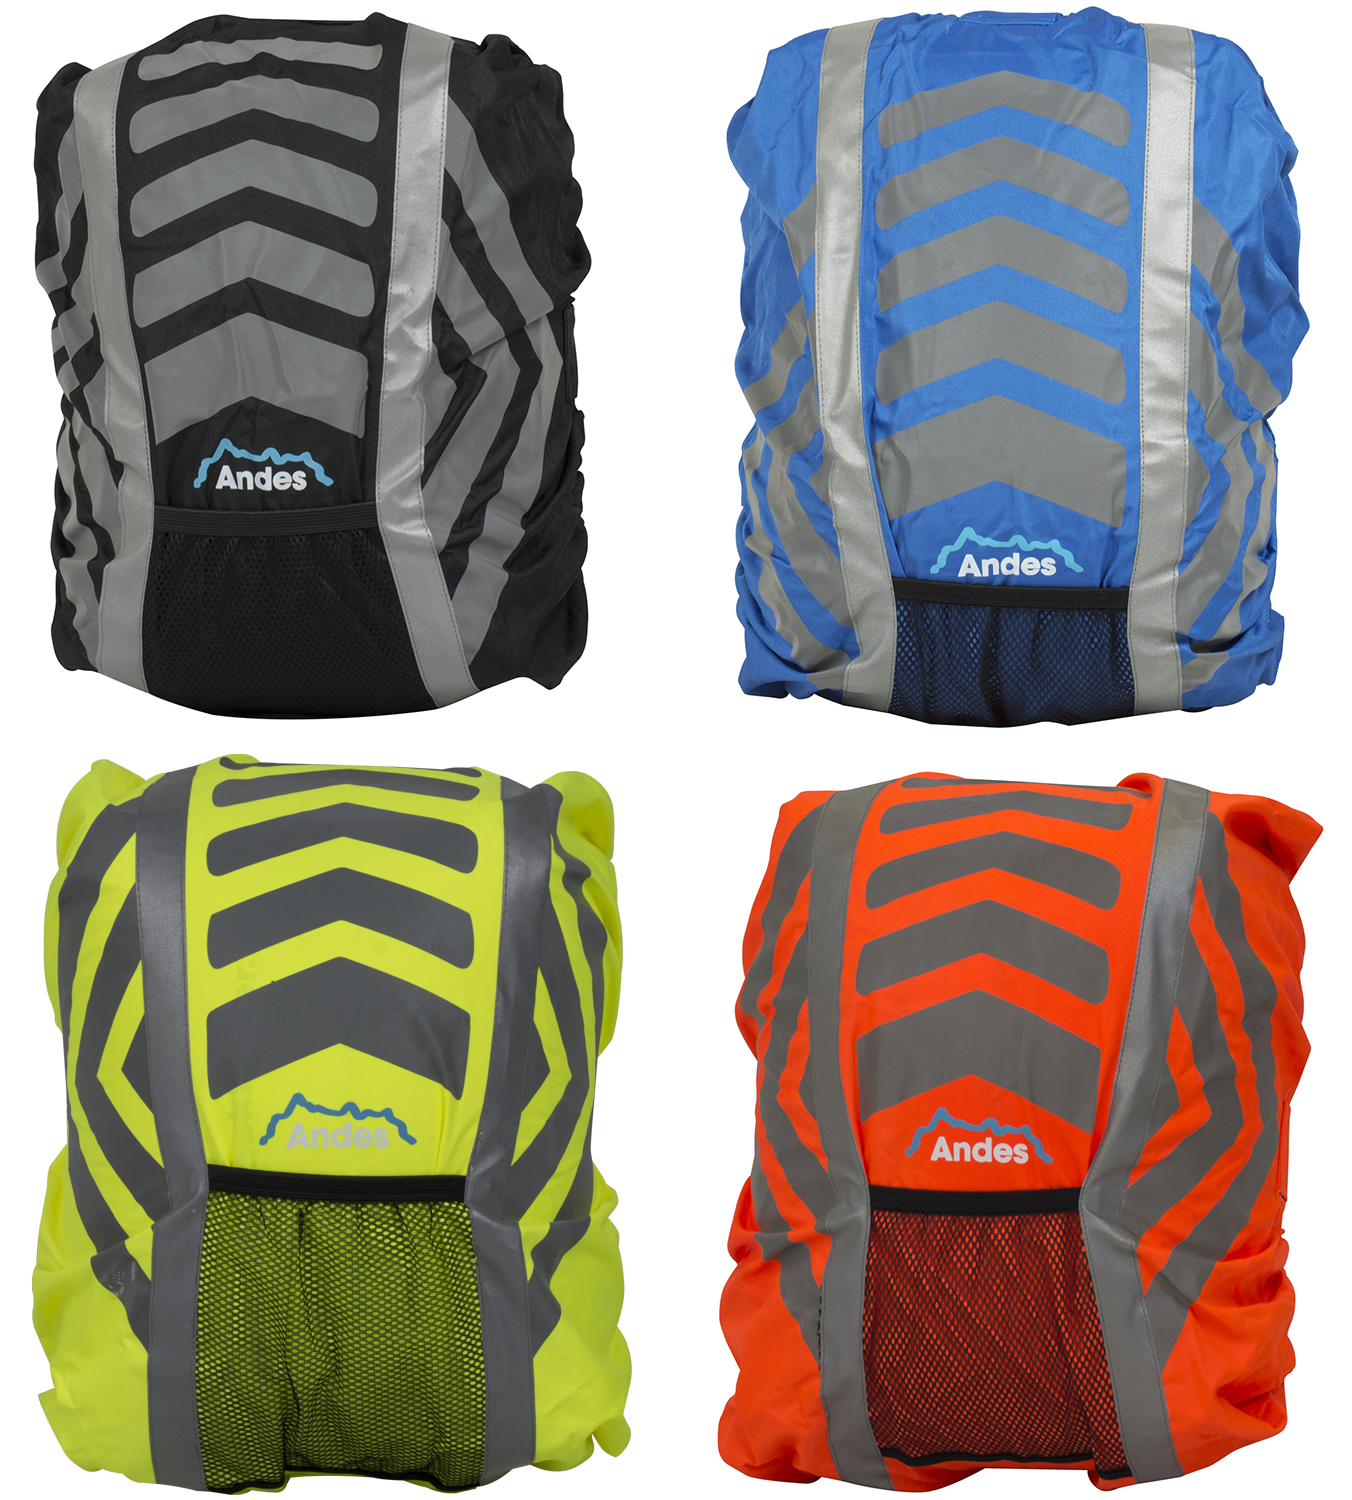 ... official photos 2904a 4d937 Respro High Viz Hump Rucsac Cover  Waterproof 00106122 9999 1 Large Source ... ee7498462b716